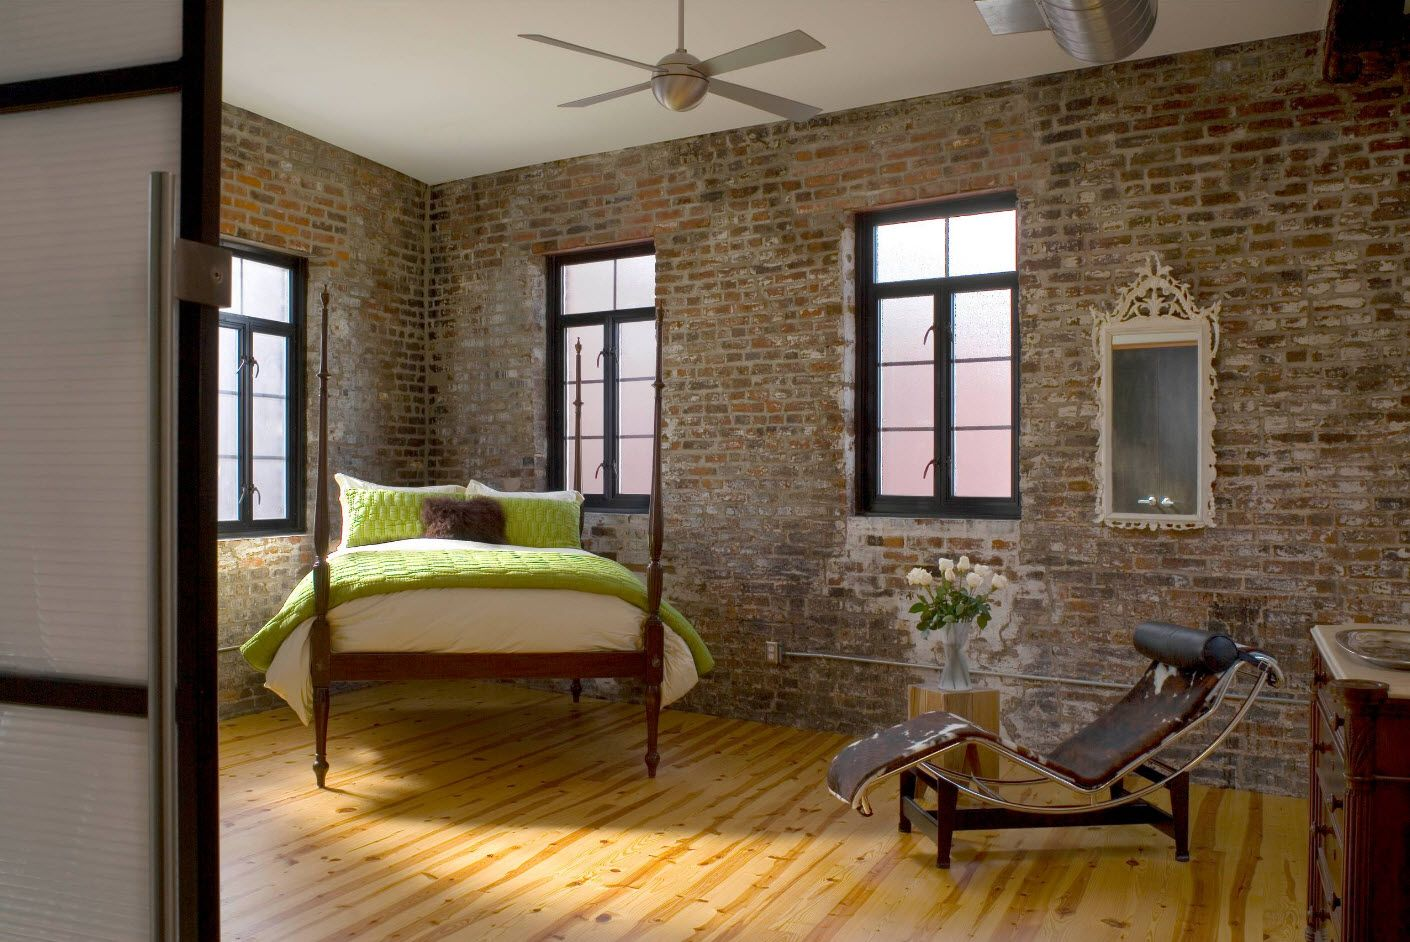 Apartment Interior Design Inspiration Ideas & Trends 2017. Brickwork and rough finish in Rustic style